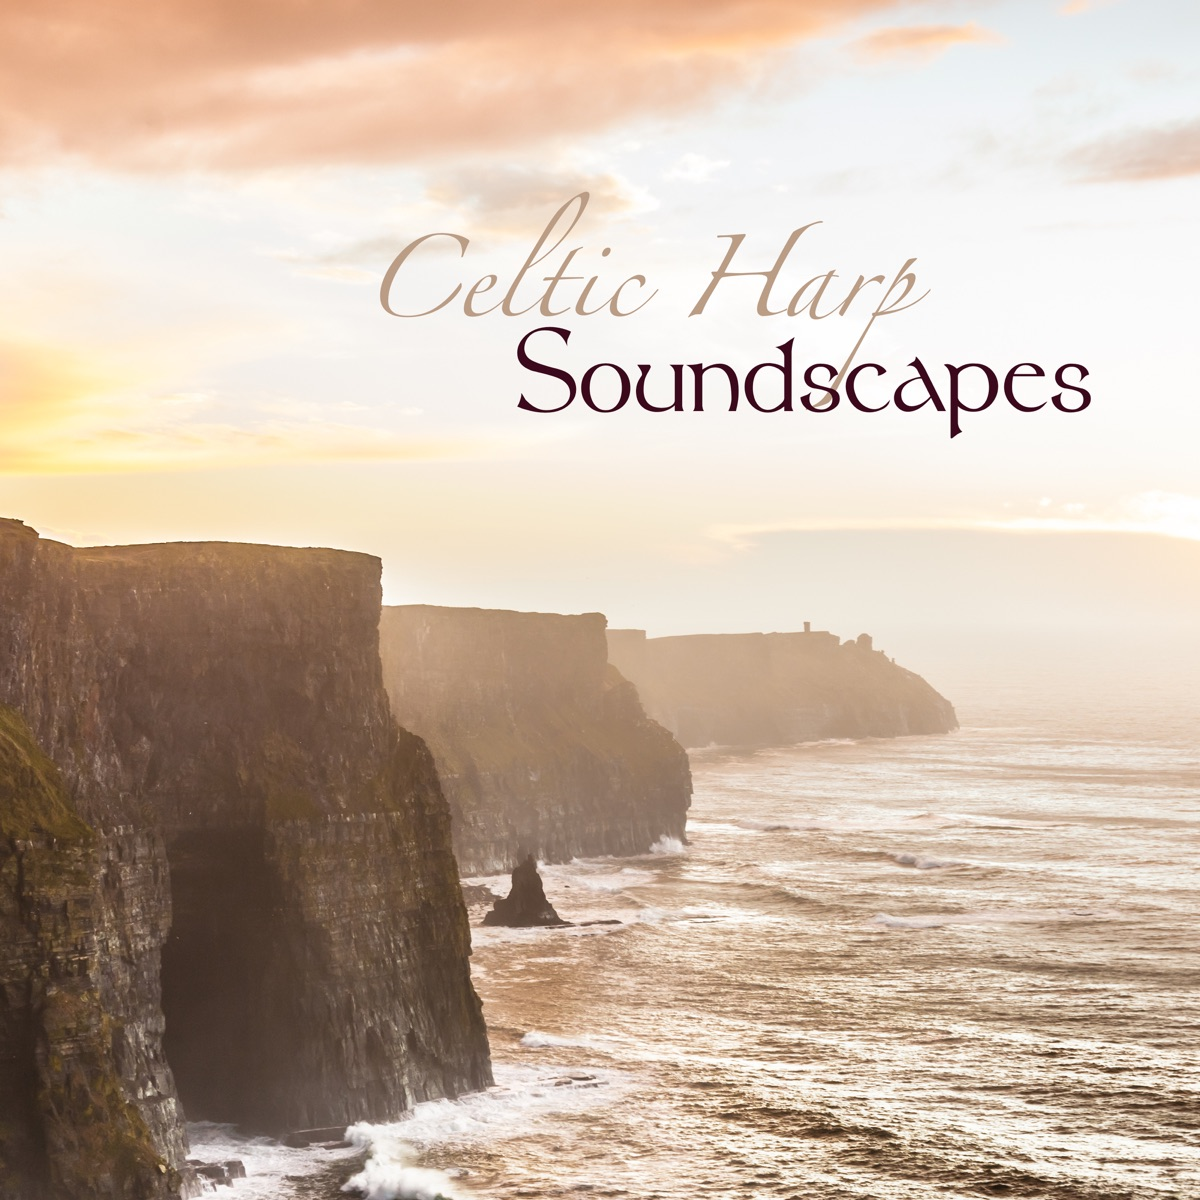 Celtic Harp Soundscapes - Relaxing Celtic Music & Traditional Harp ...